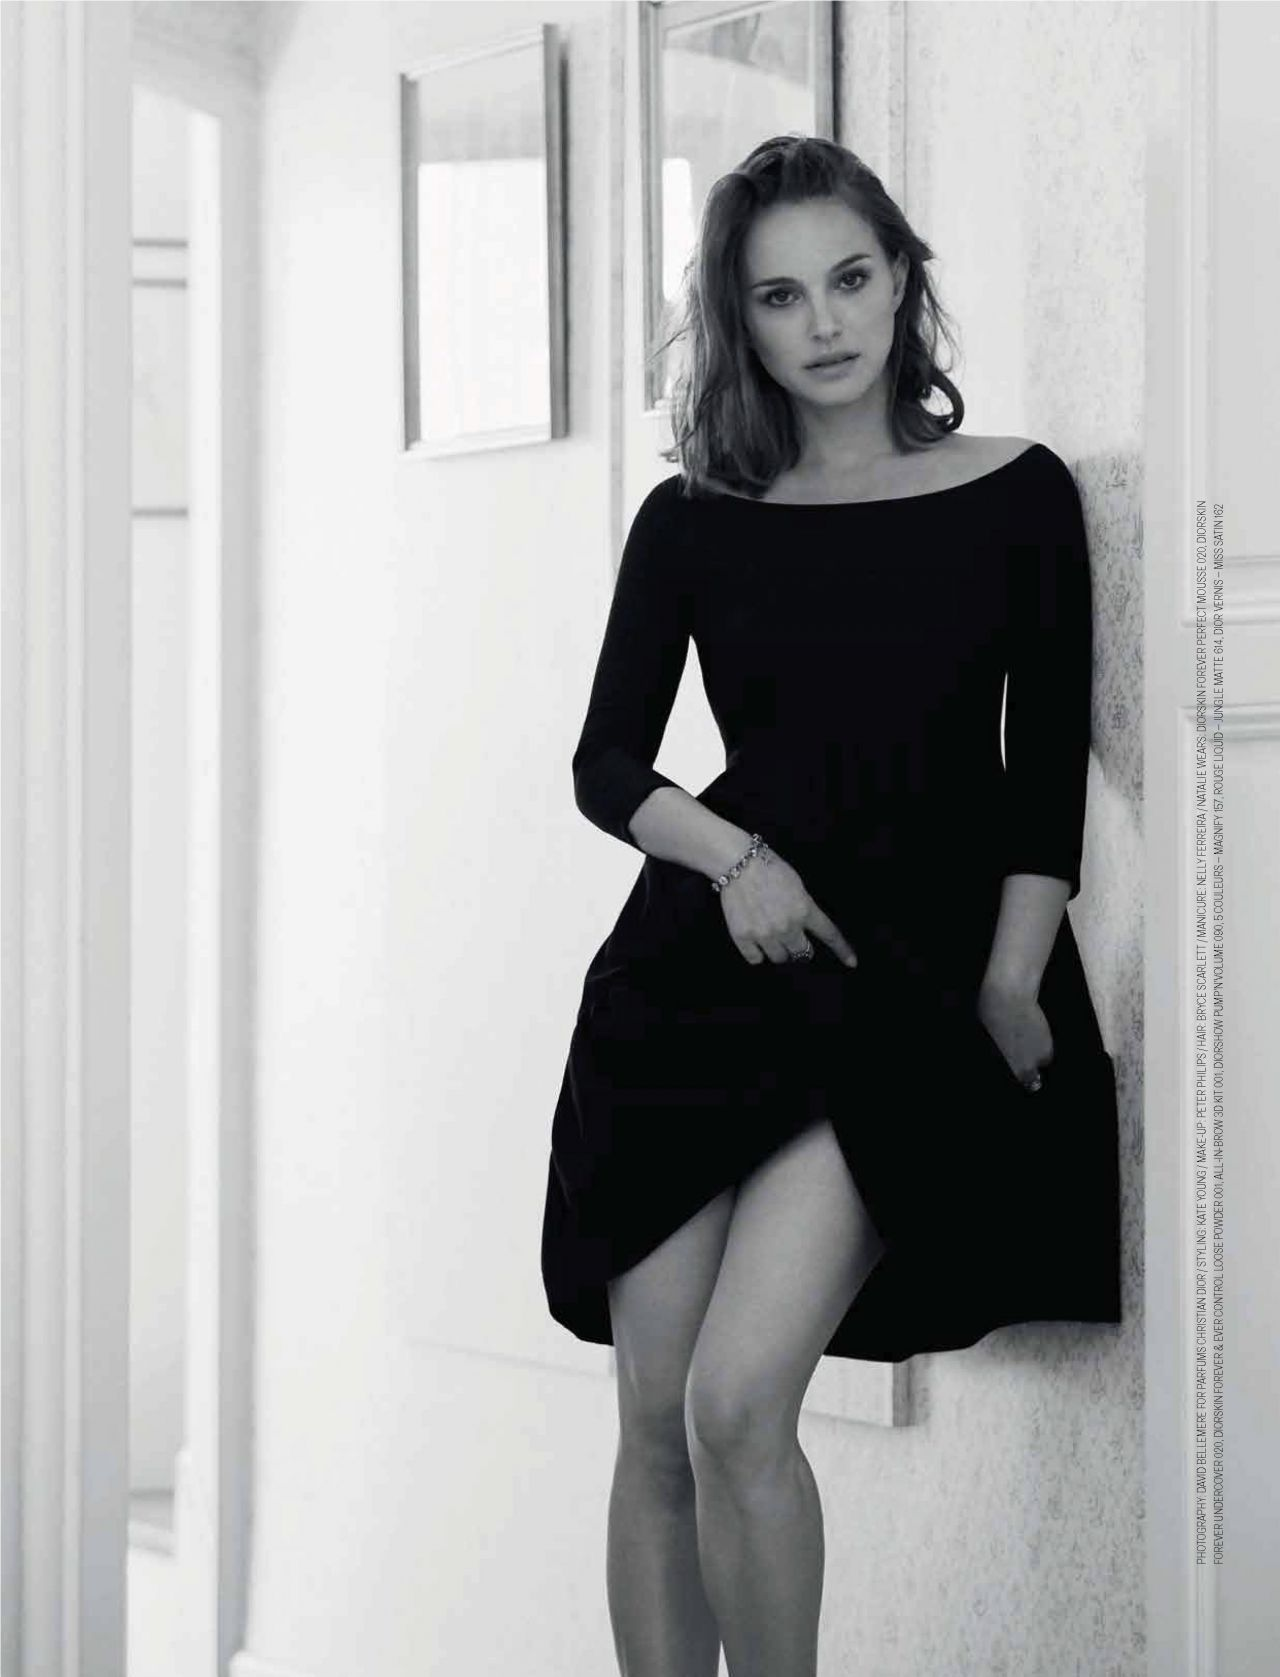 Natalie Portman Elle Magazine South Africa September